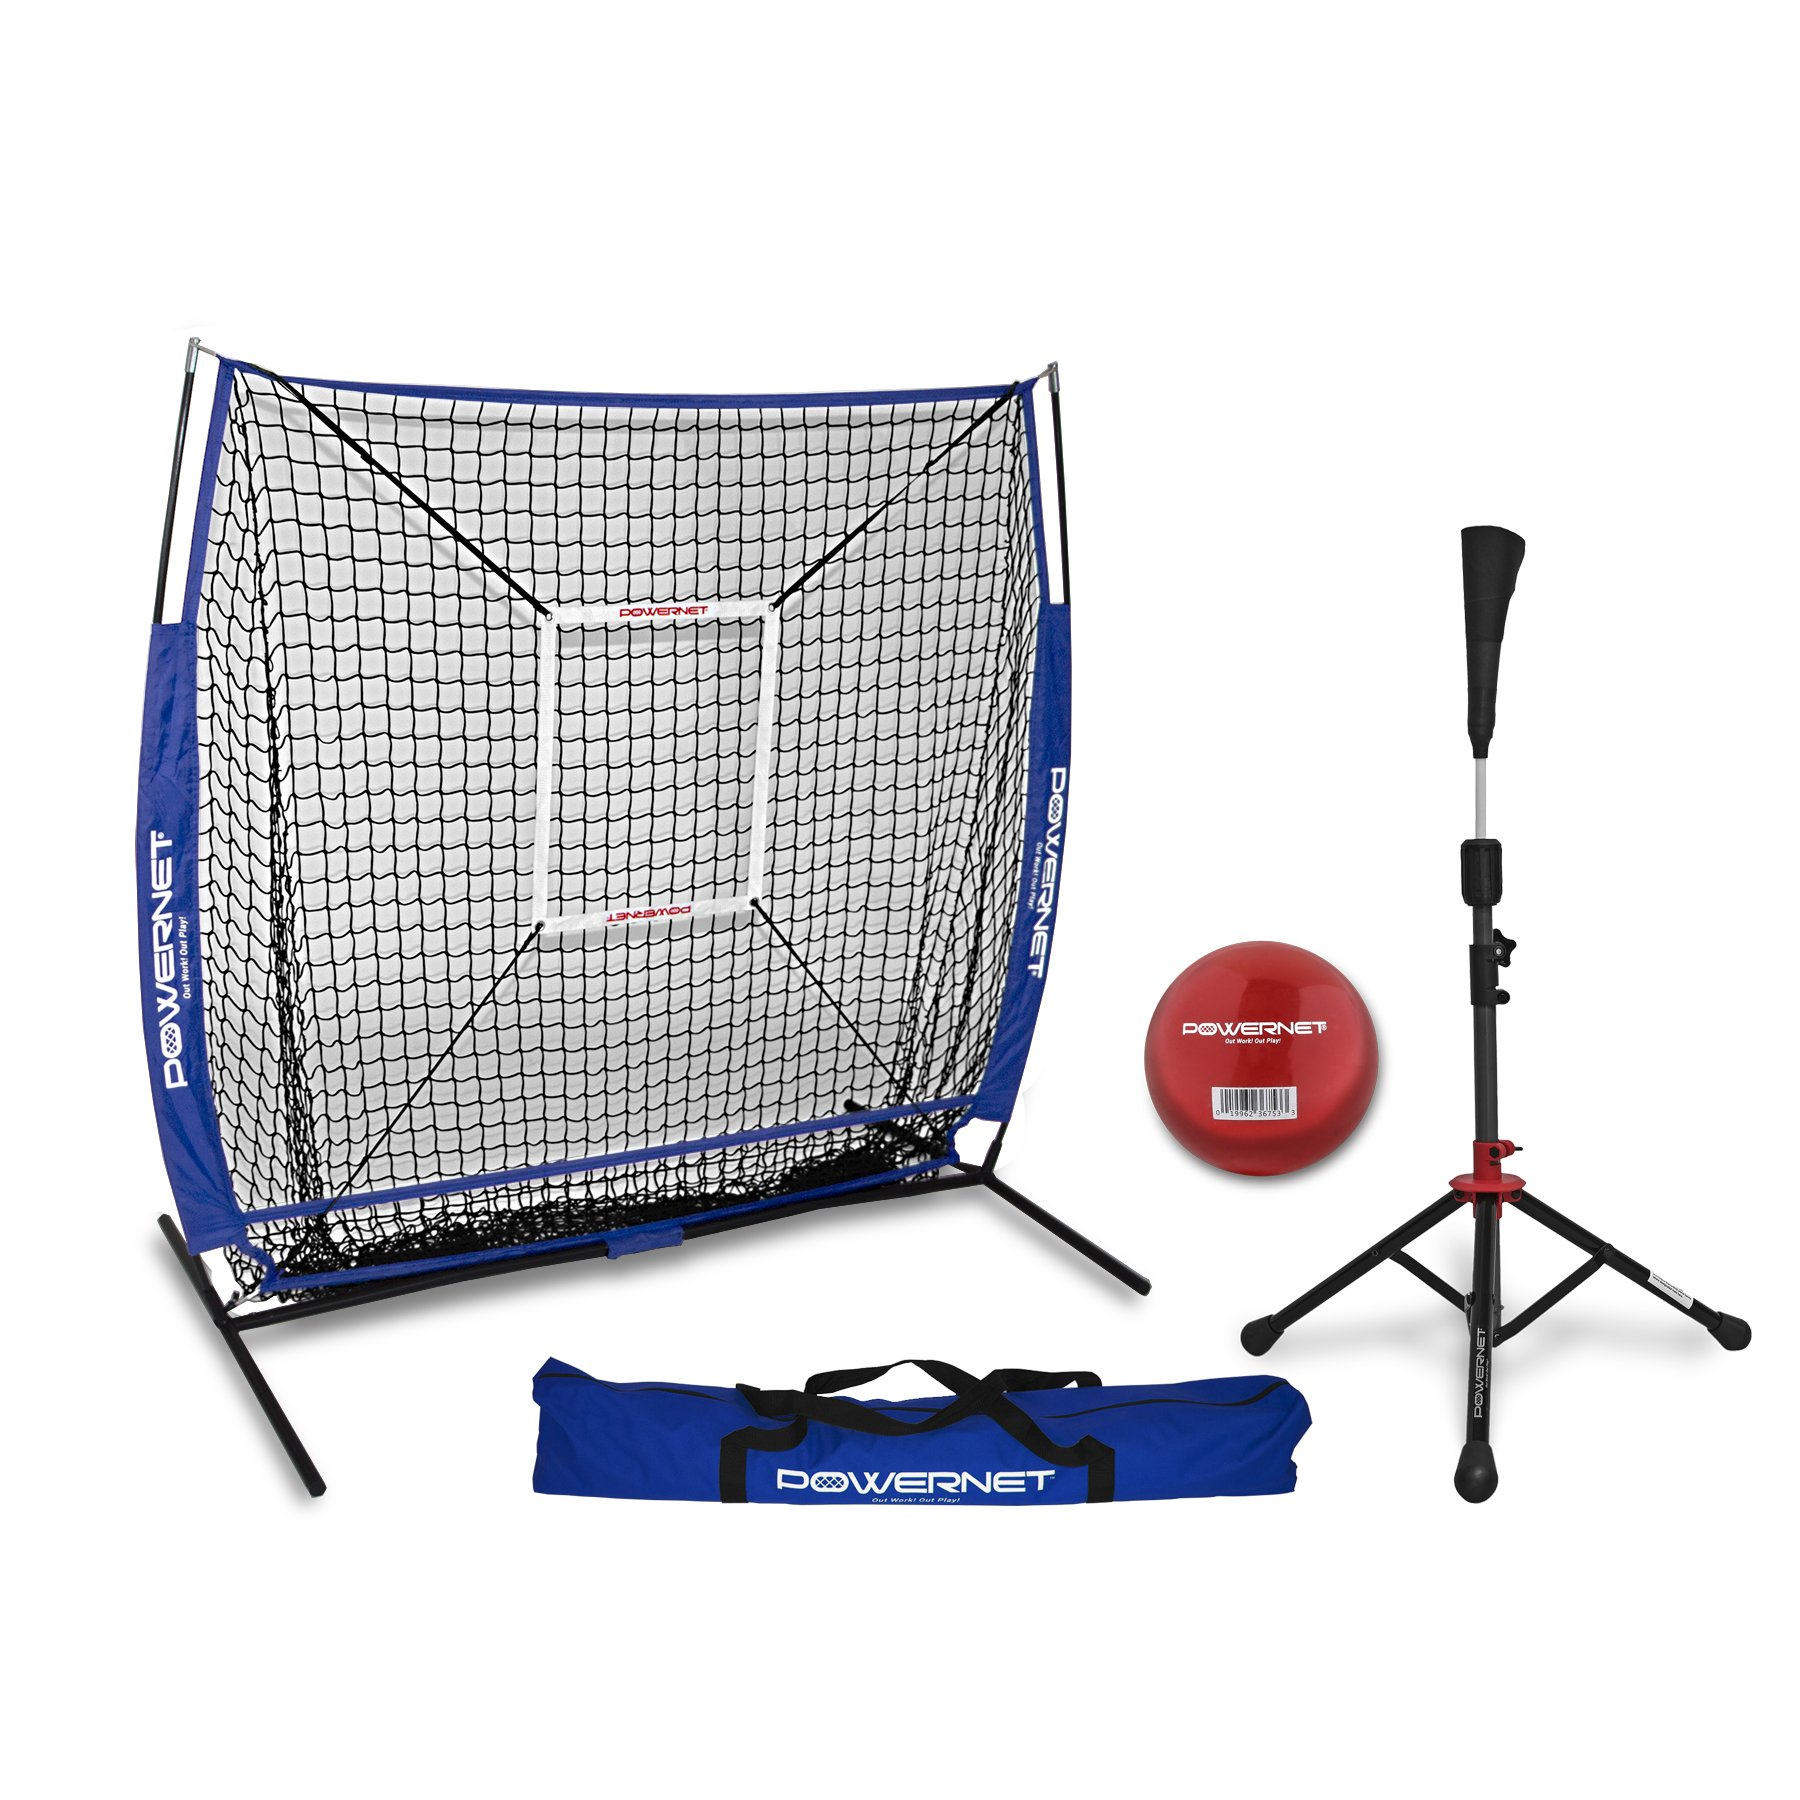 PowerNet 5x5 Practice Net + Deluxe Tee + Strike Zone + Weighted Training Ball Bundle (Royal Blue) | Baseball Softball Pitching Batting Coaching Pack | Work on Pitch Accuracy | Build Plate Confidence